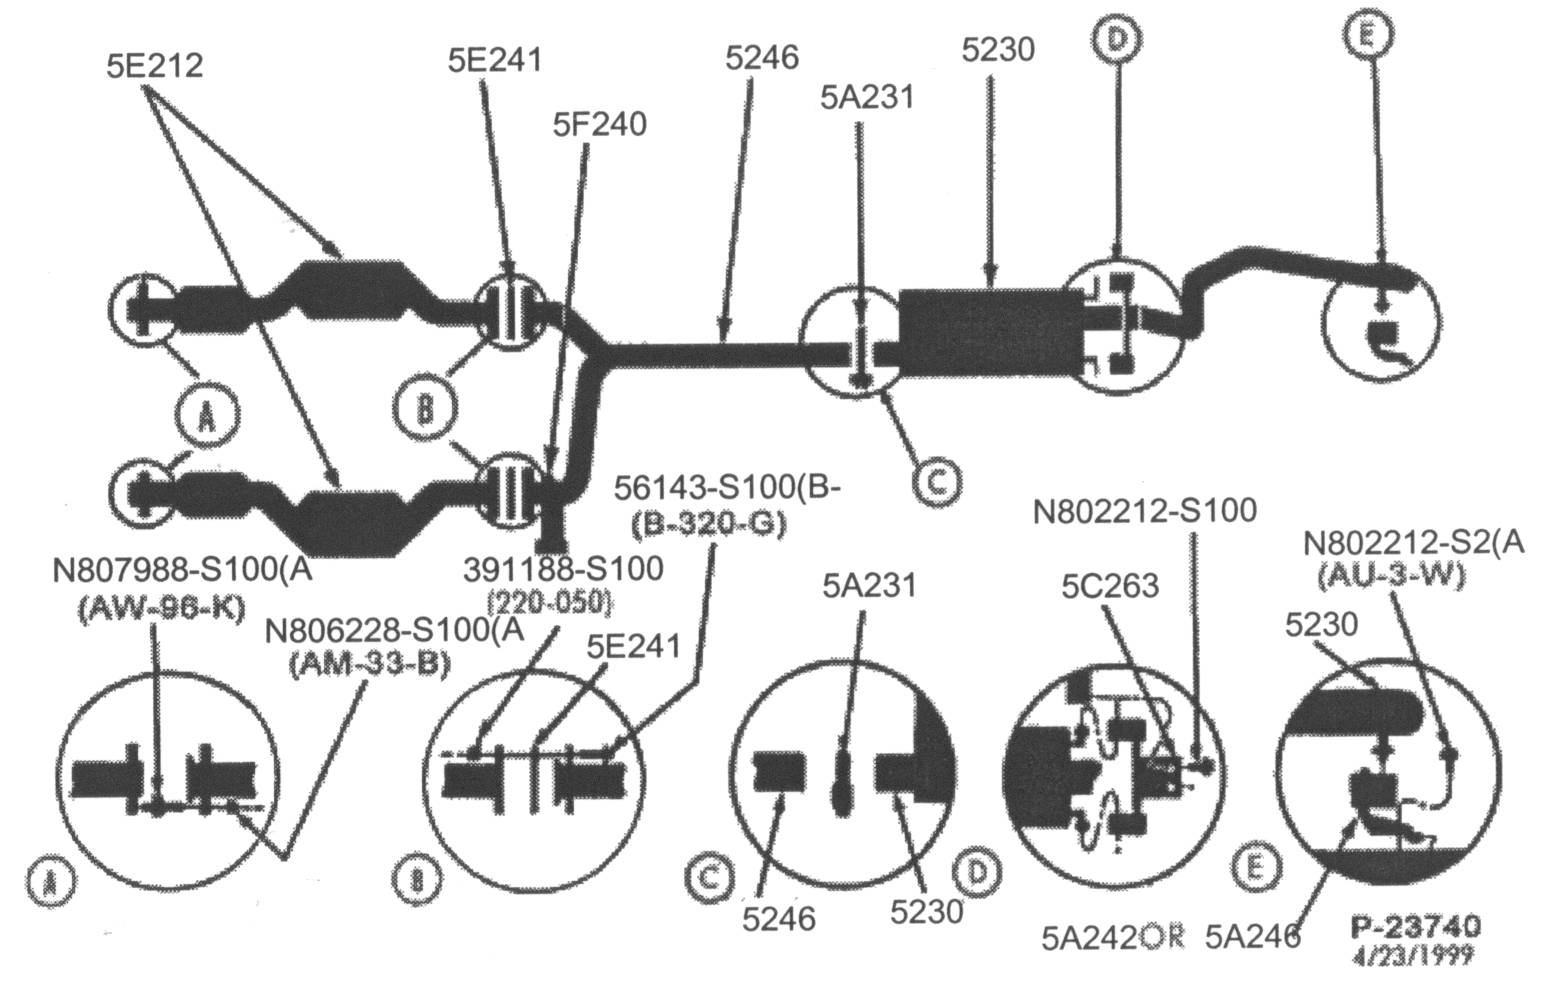 2003 ford explorer exhaust diagram wiring for bt telephone socket 1998 windstar schematic escape